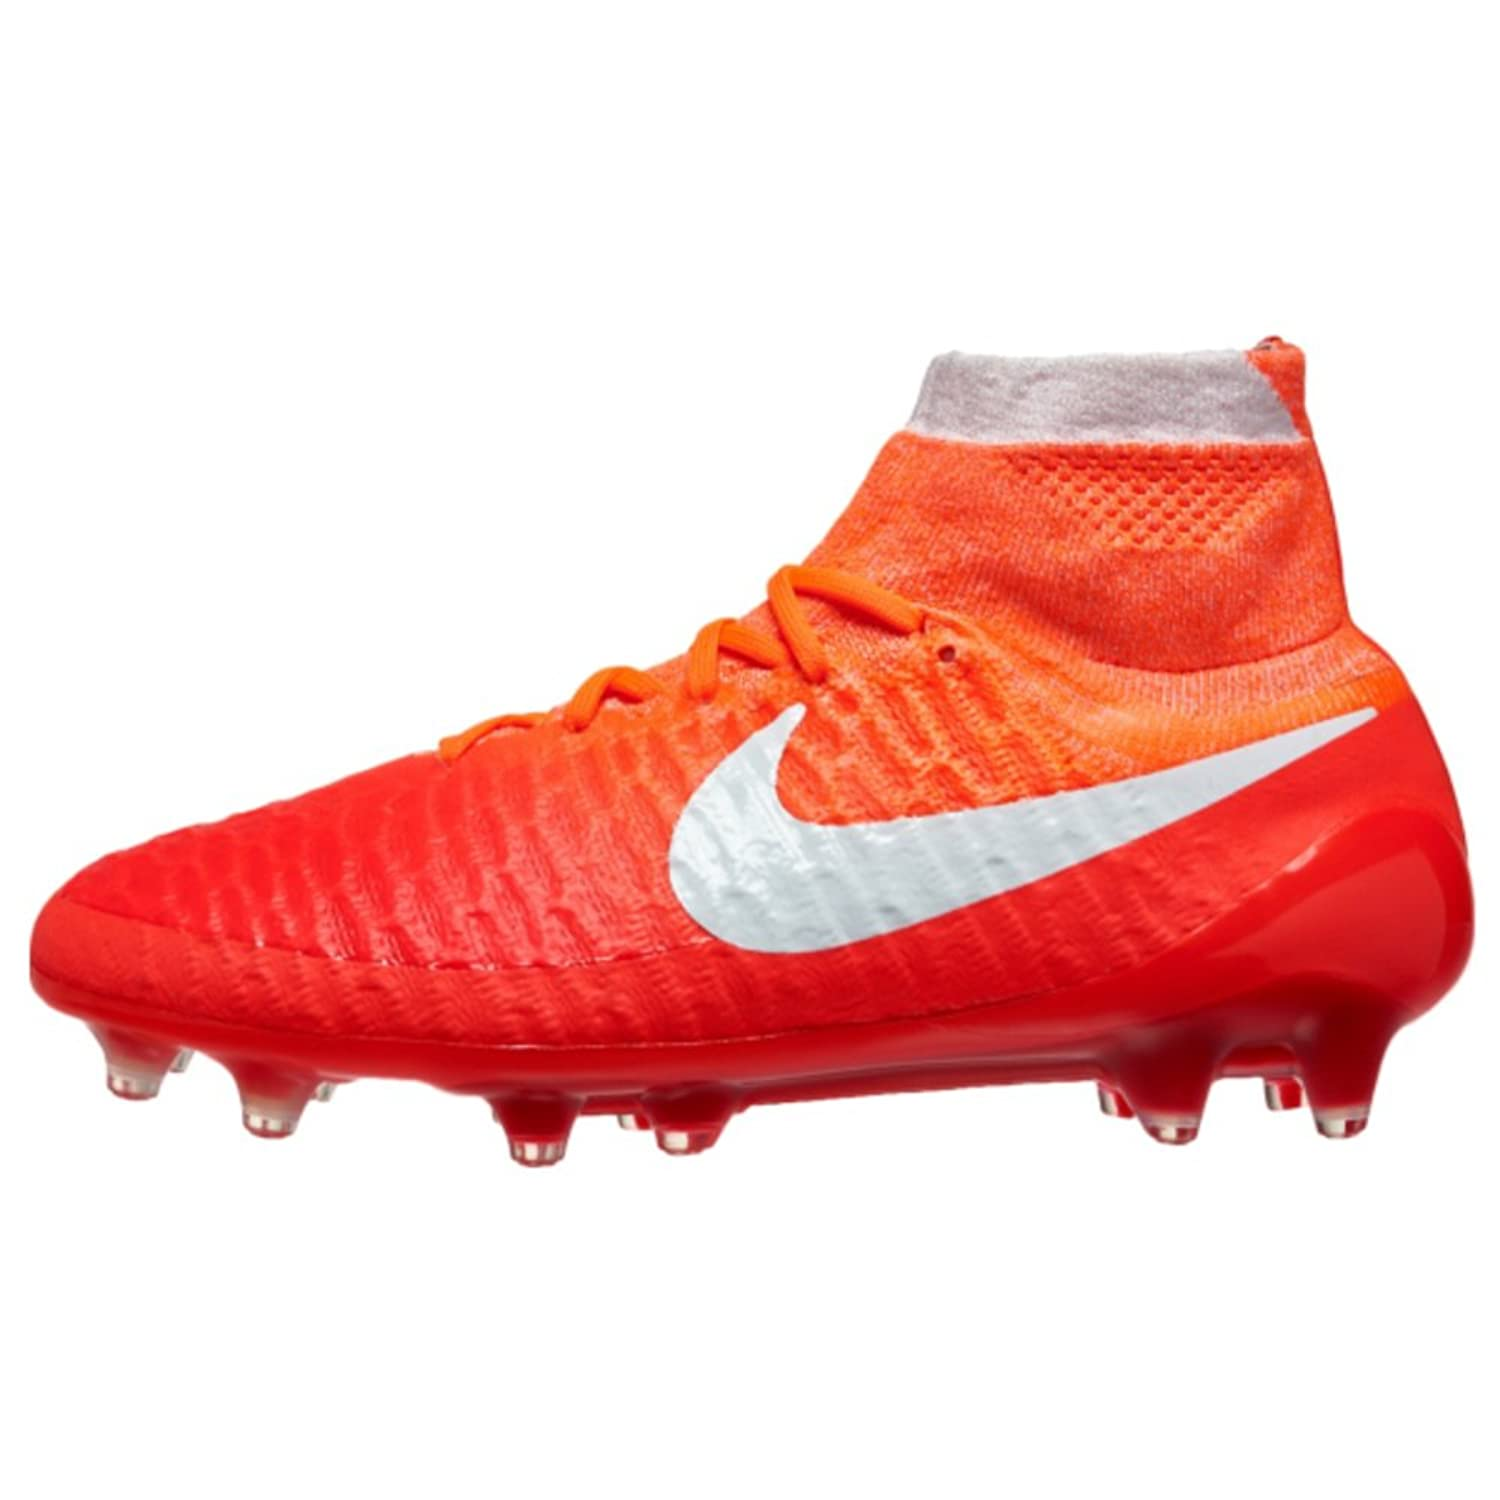 Amazon.com | NIKE WOMEN'S MAGISTA OBRA FG SOCCER CLEATS (BRIGHT CRIMSON/UNIVERSITY  RED/HYPER ORANGE/WHITE) (10) | Soccer